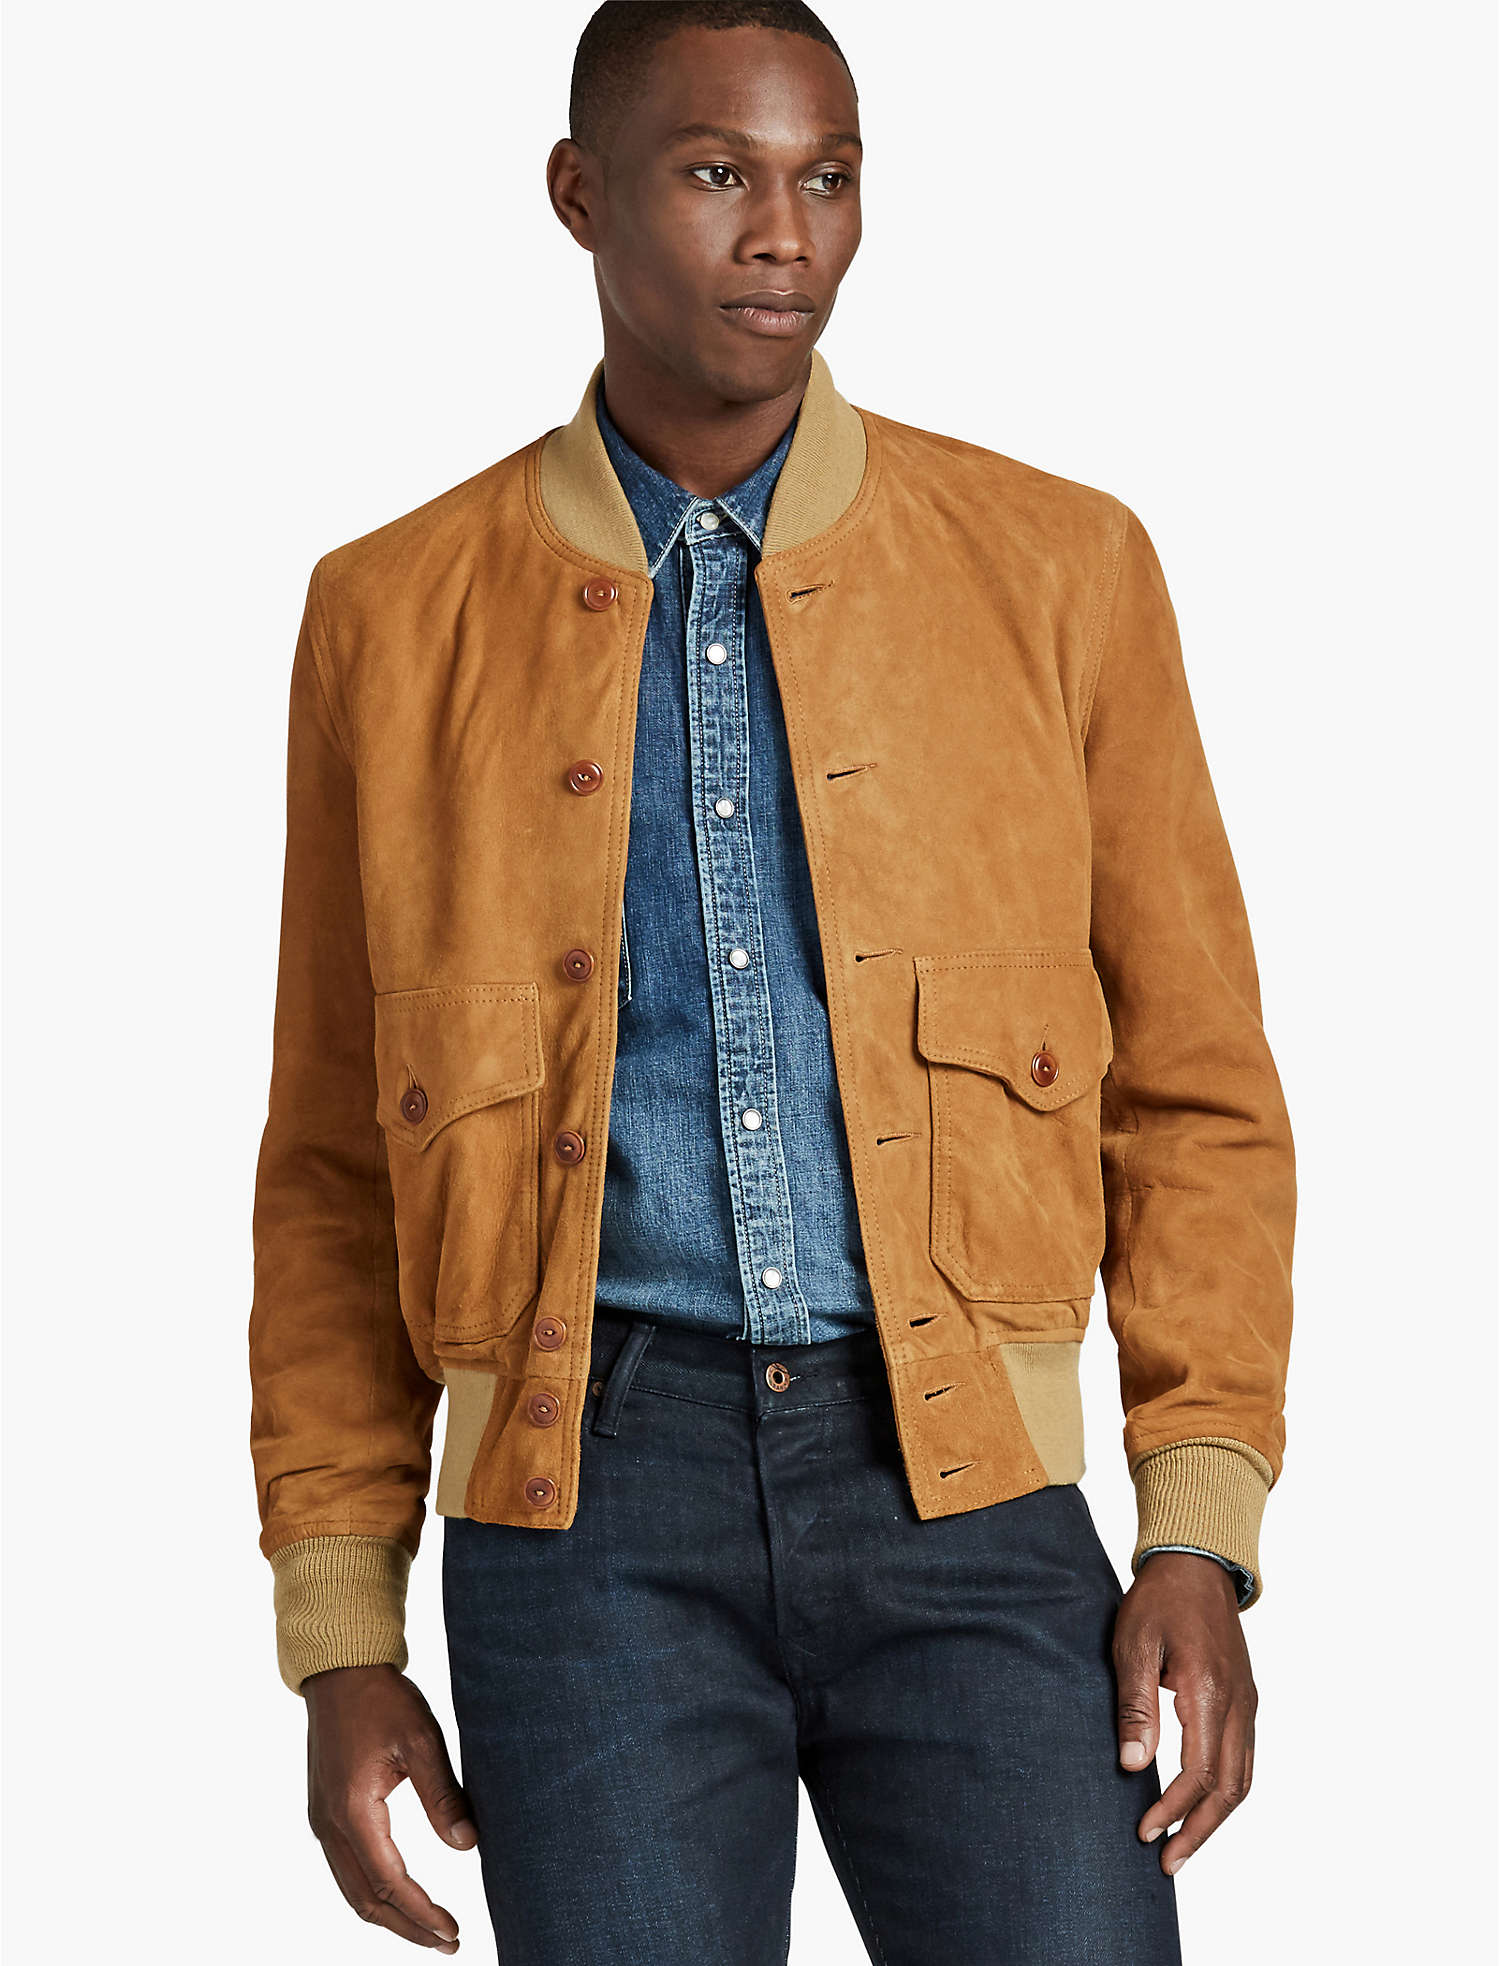 Leather jacket under 500 - Currently 100 Off At 590 But Seems To Periodically Go For Under 400 It Was 350 At Xmas Sale So I Did A Why Not Order Quite Like It